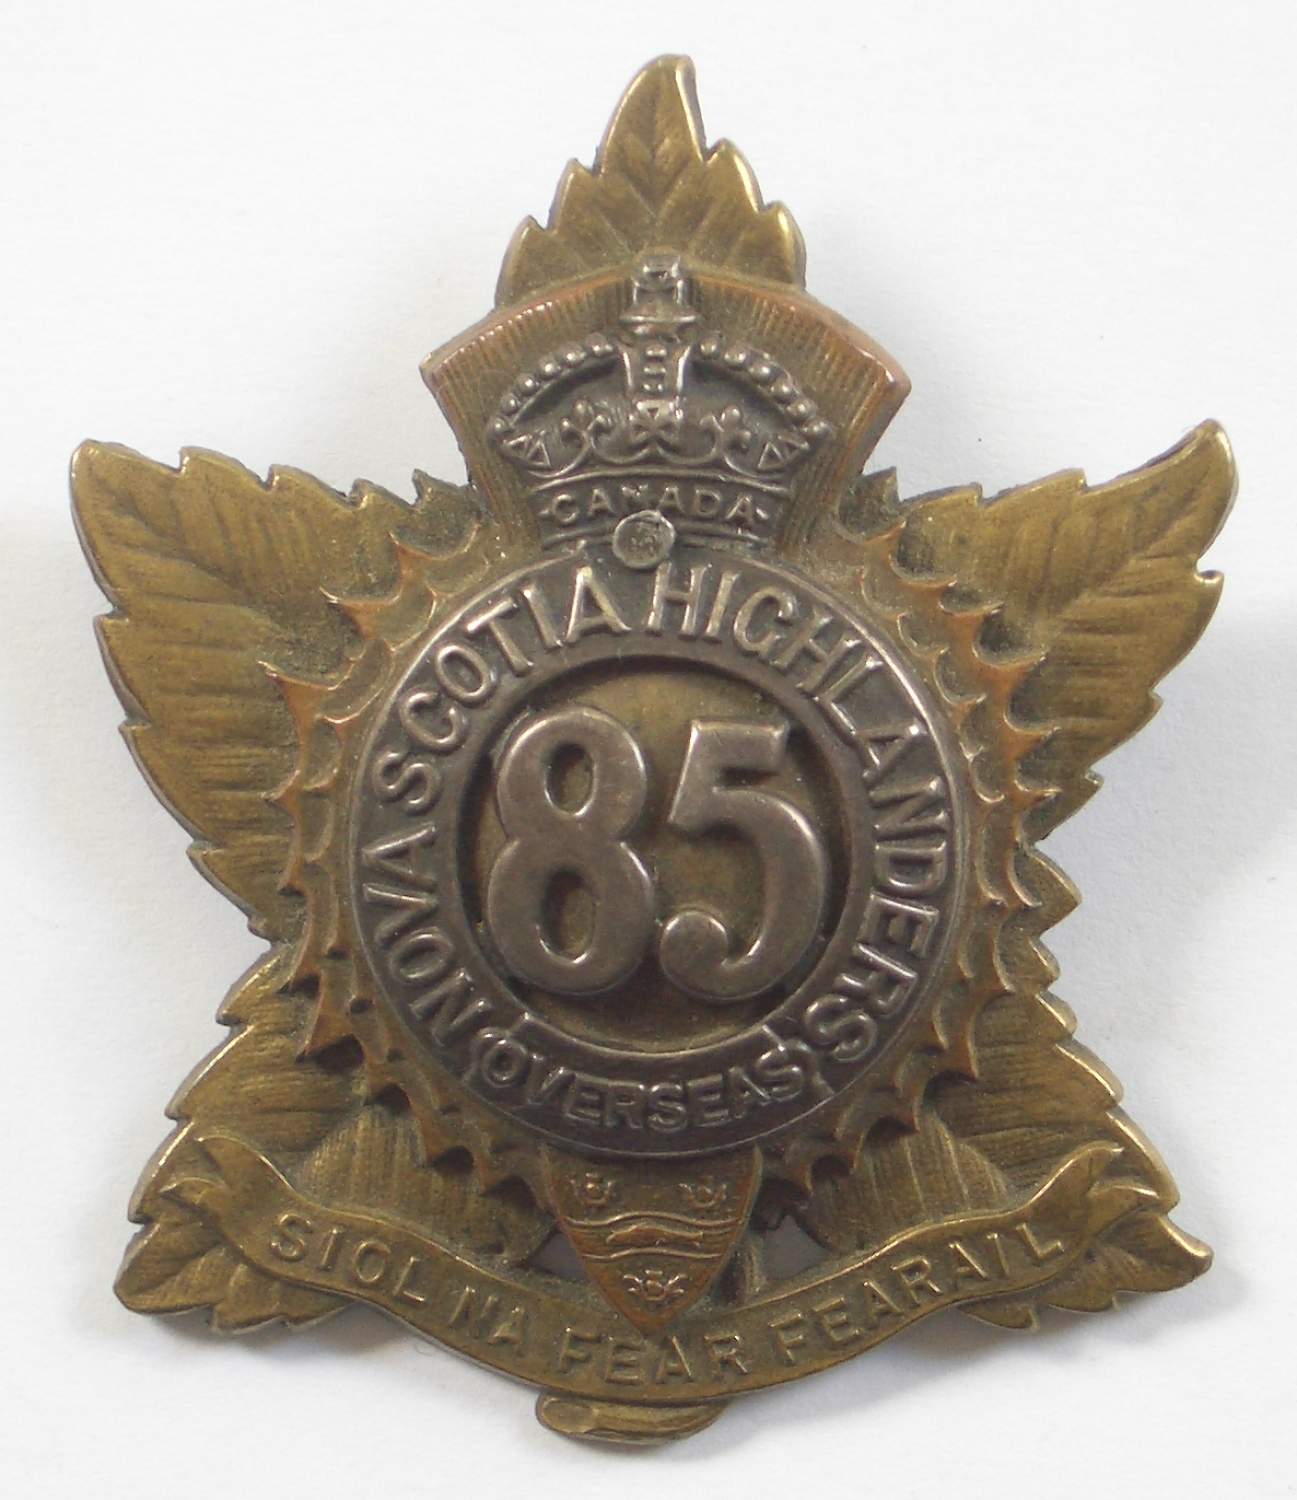 85th (Nova Scotia Hldrs) CEF Officer's badge